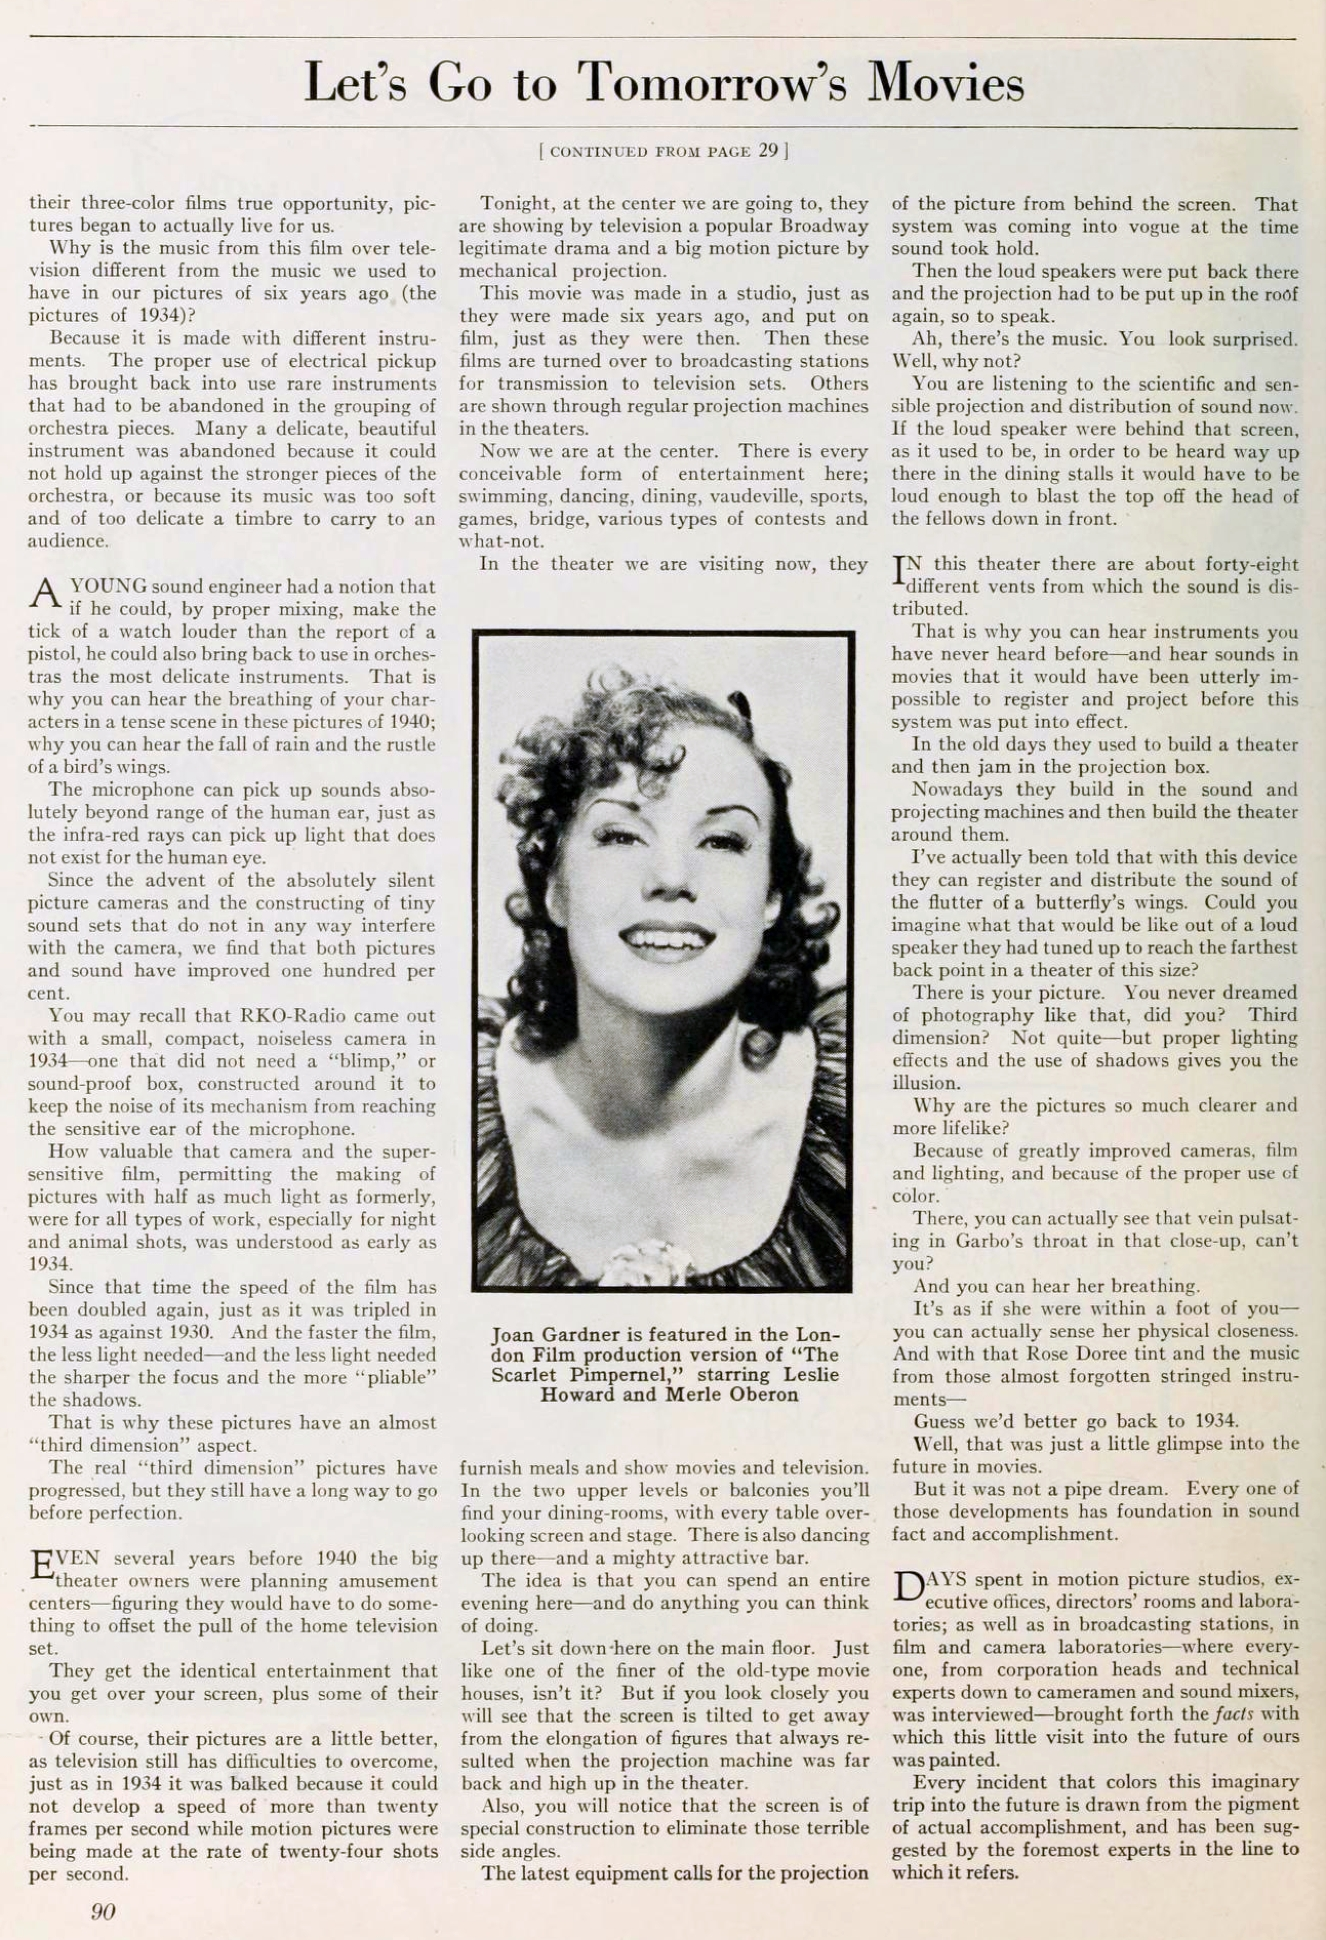 photoplay dec 1934 let's go to tomorrow's movies 02a